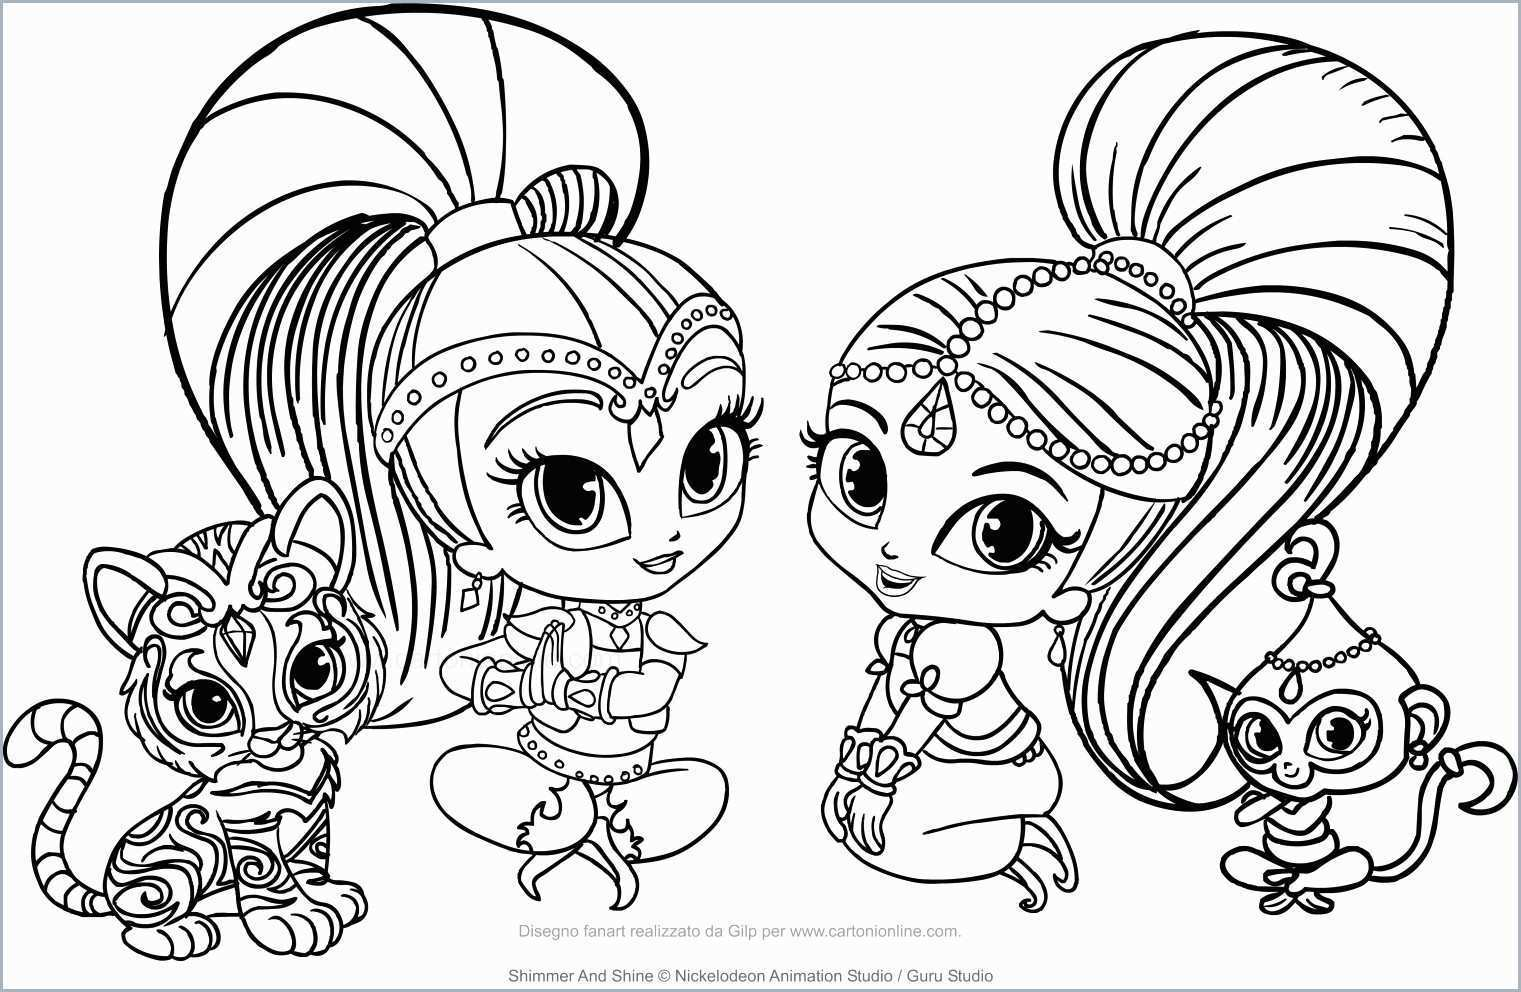 Shimmer And Shine Coloring Pages - Coloring Home